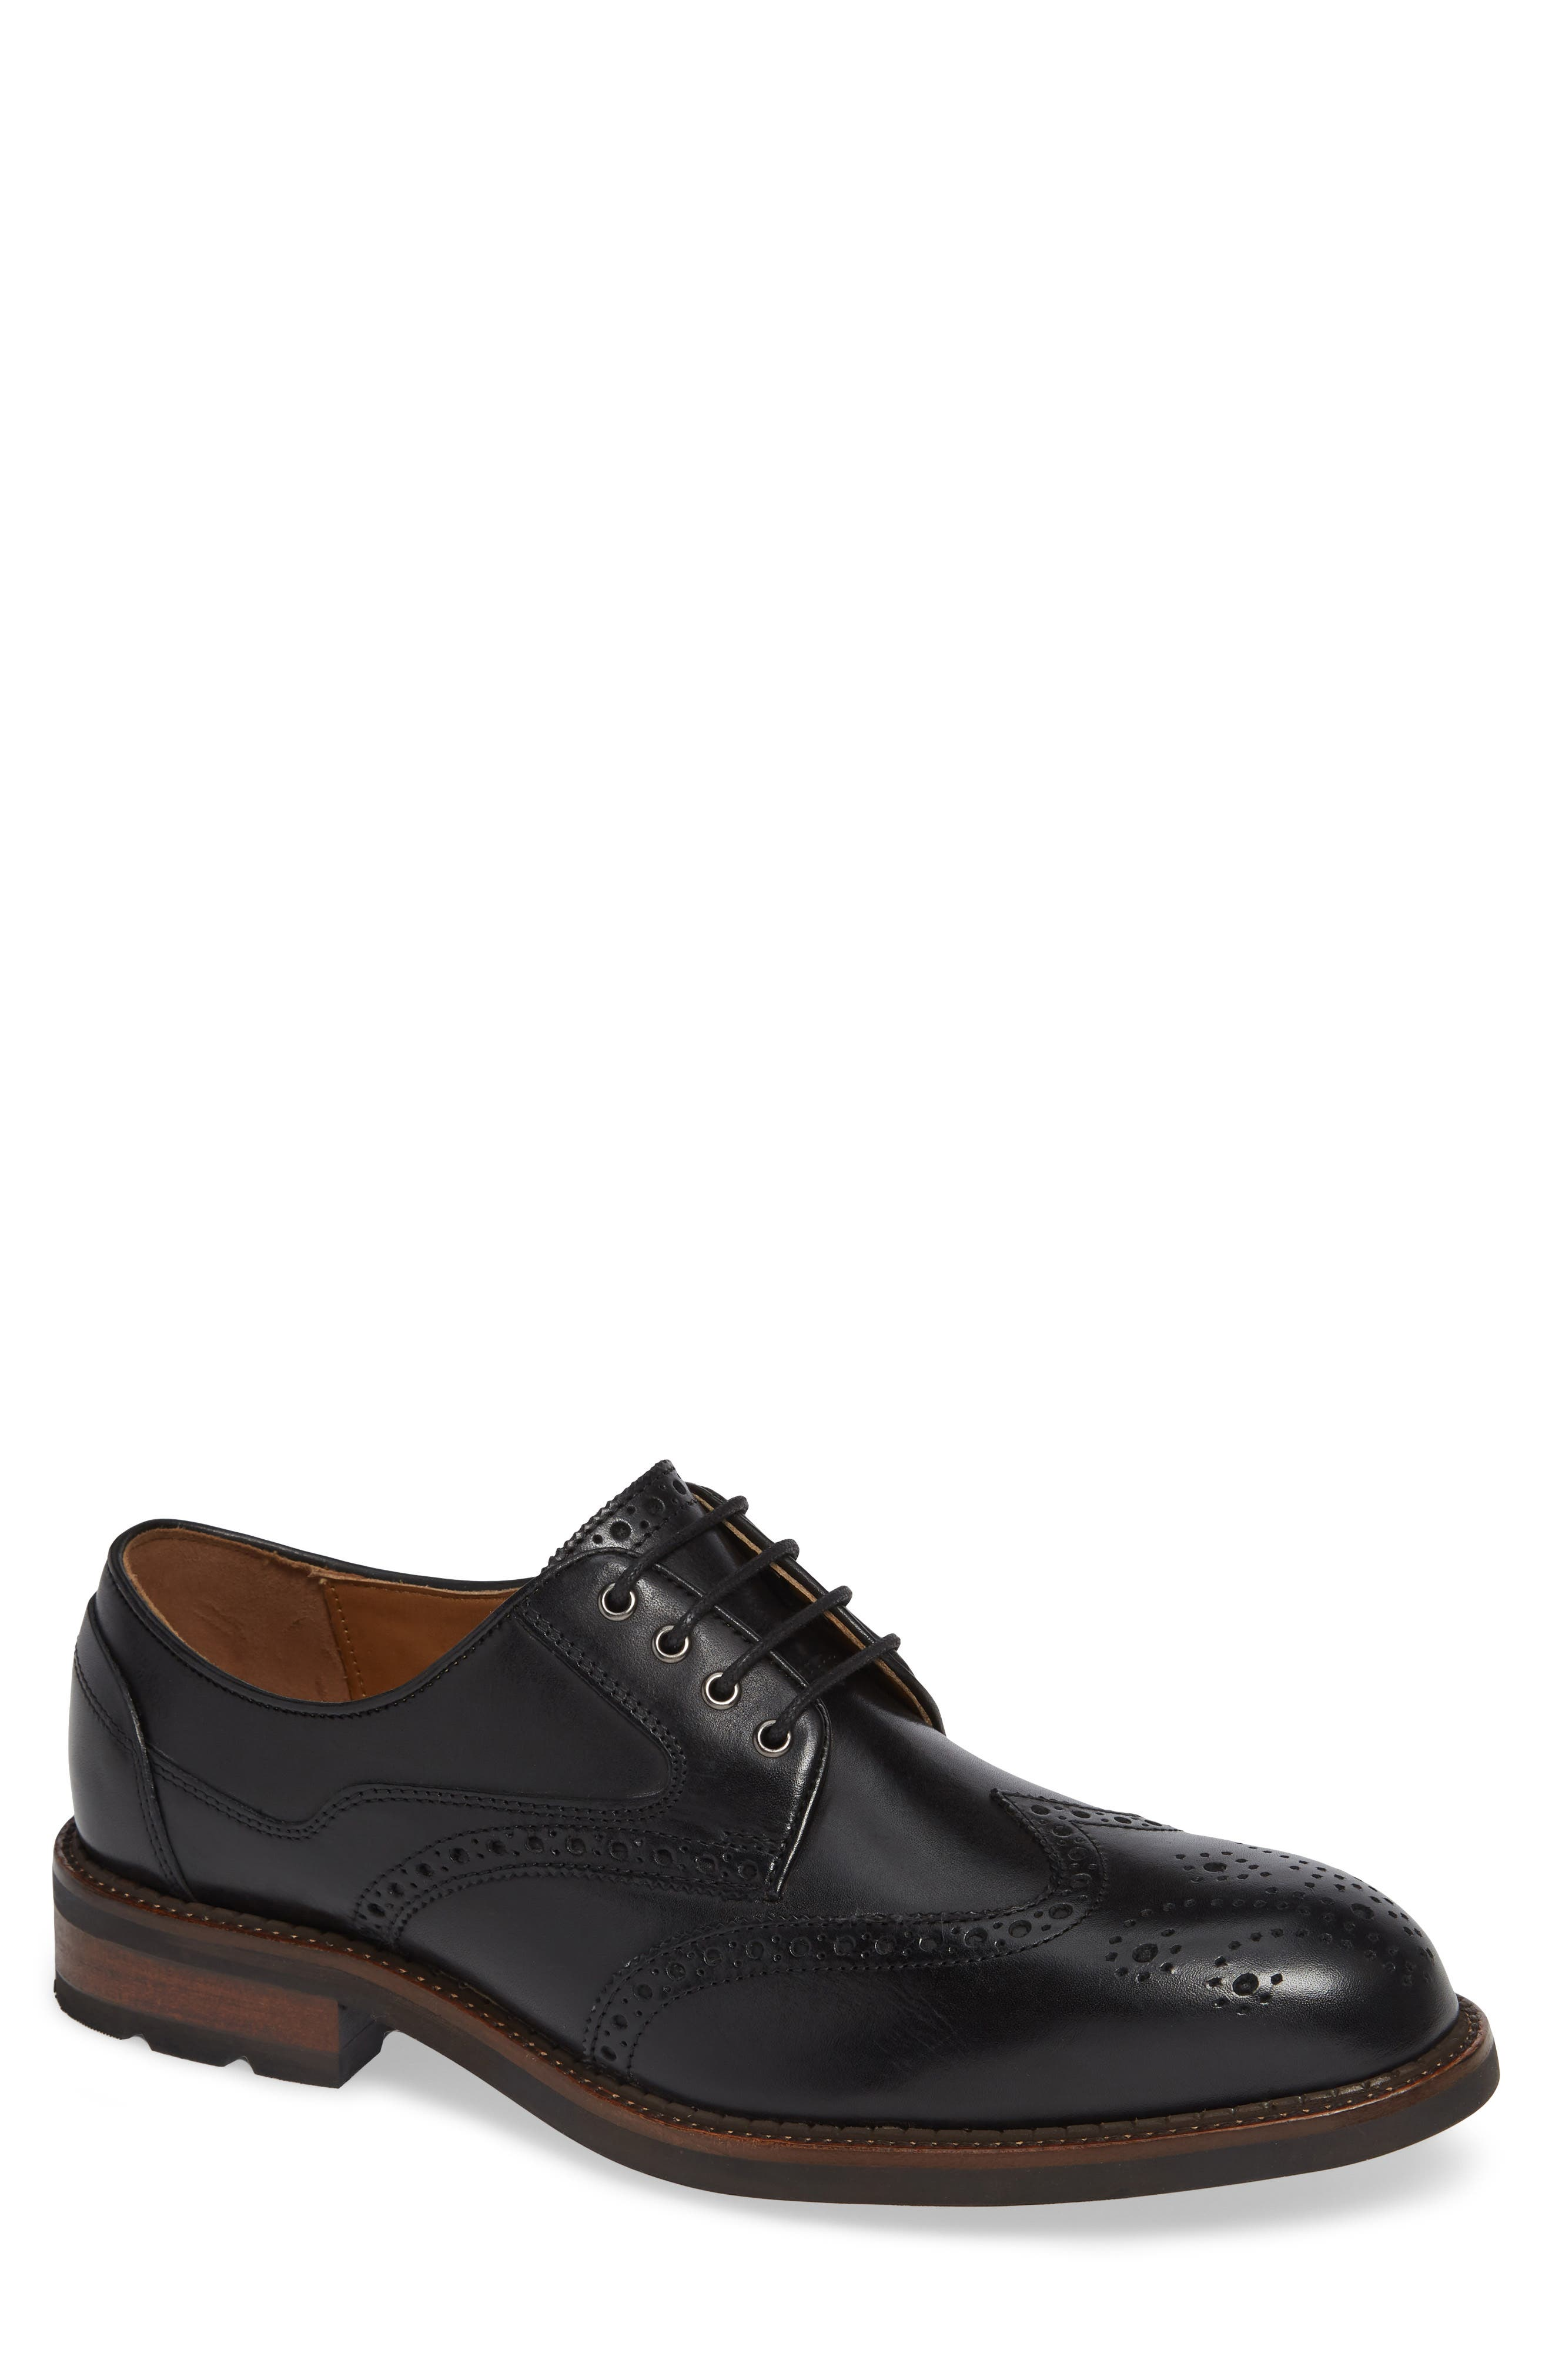 Fullerton Wingtip,                             Main thumbnail 1, color,                             BLACK LEATHER